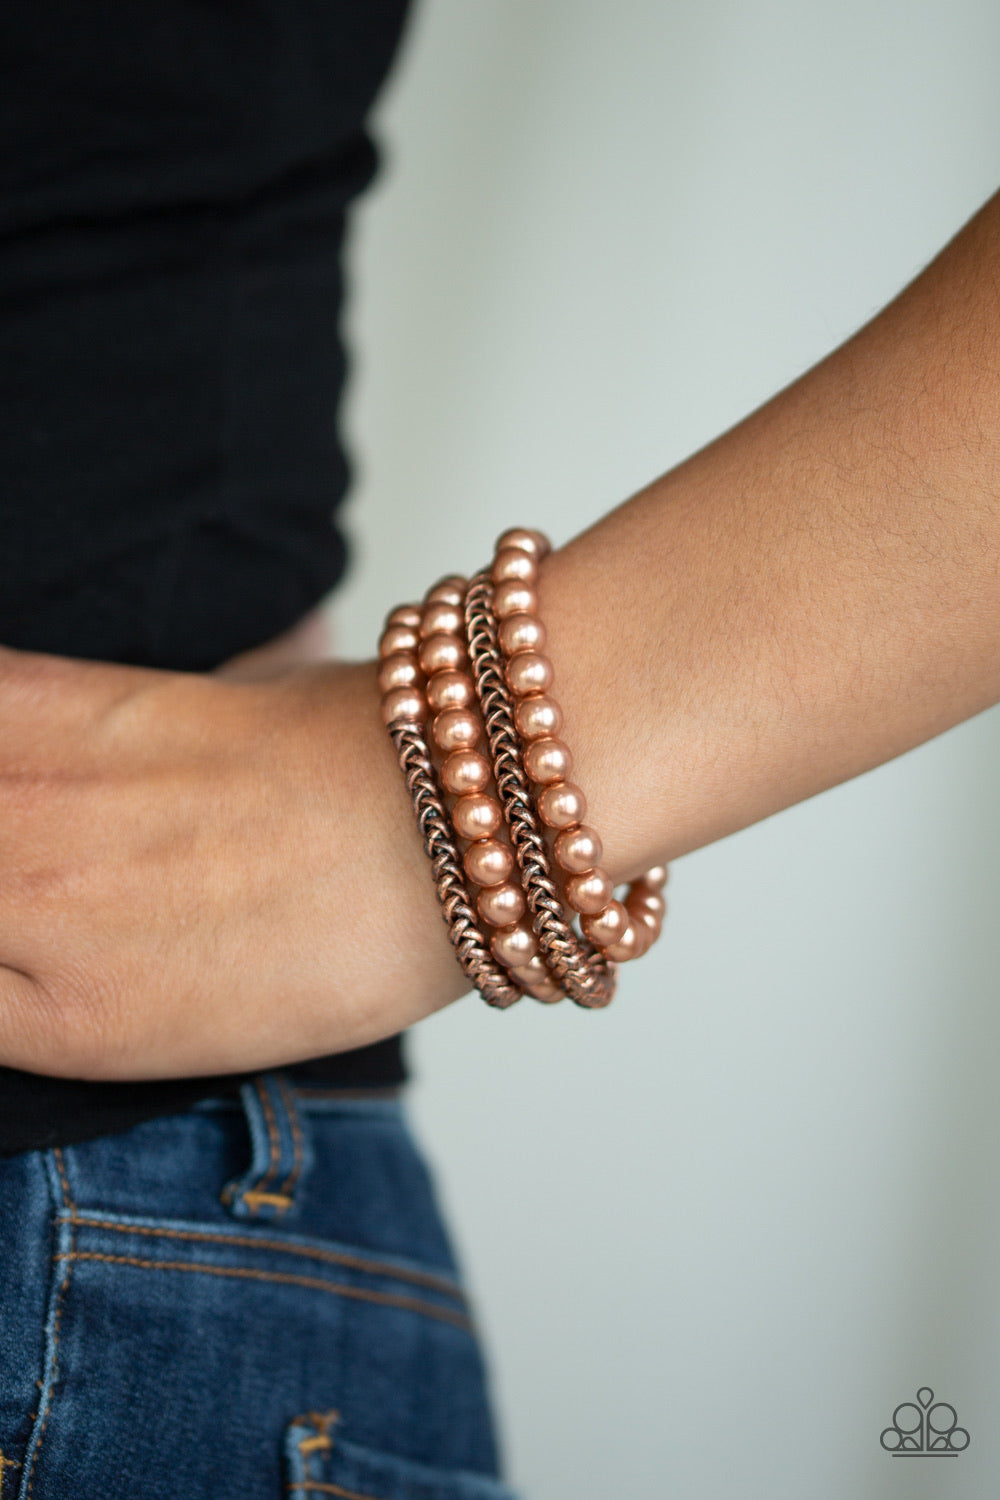 Paparazzi Jewelry Bracelet Industrial Incognito - Copper